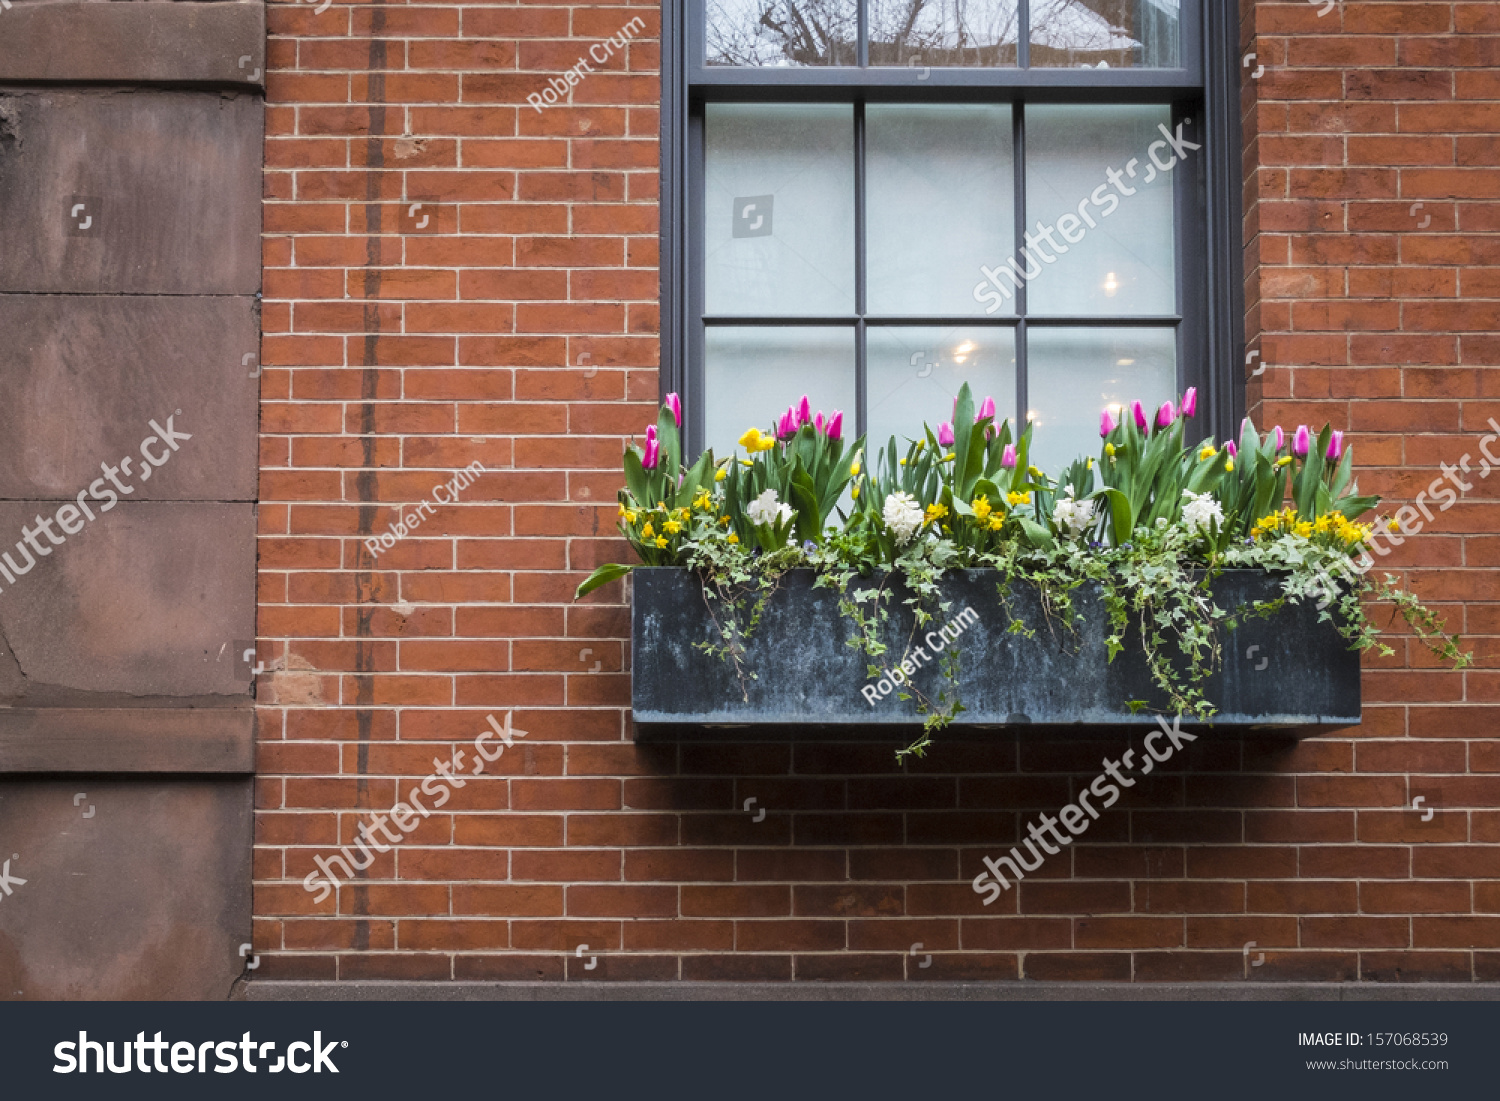 Brick Apartment Building Window window box spring flowers on old stock photo 157068539 - shutterstock